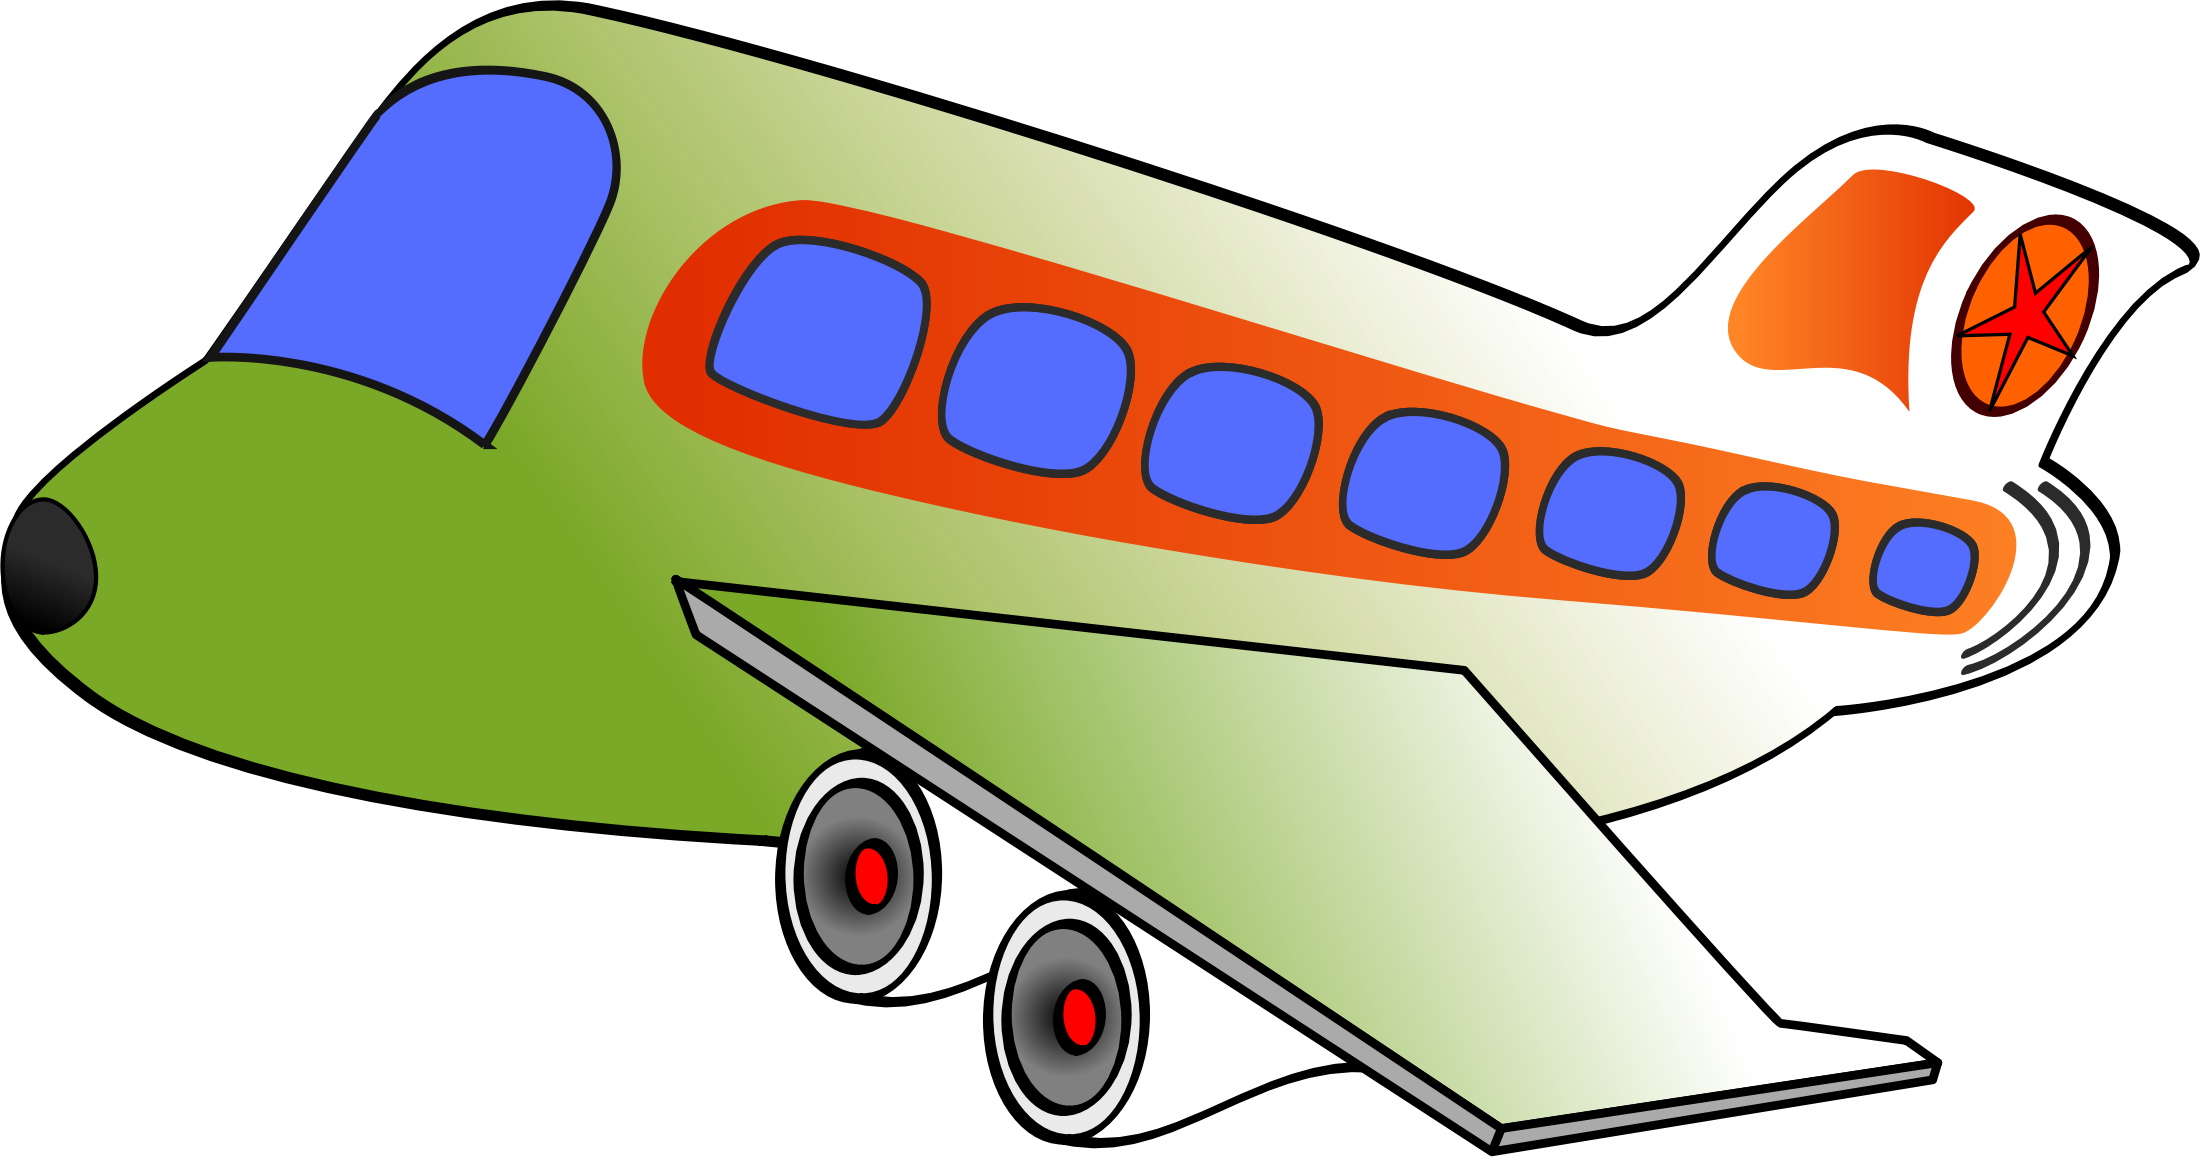 2200x1157 Funny Airplane Clipart, Explore Pictures